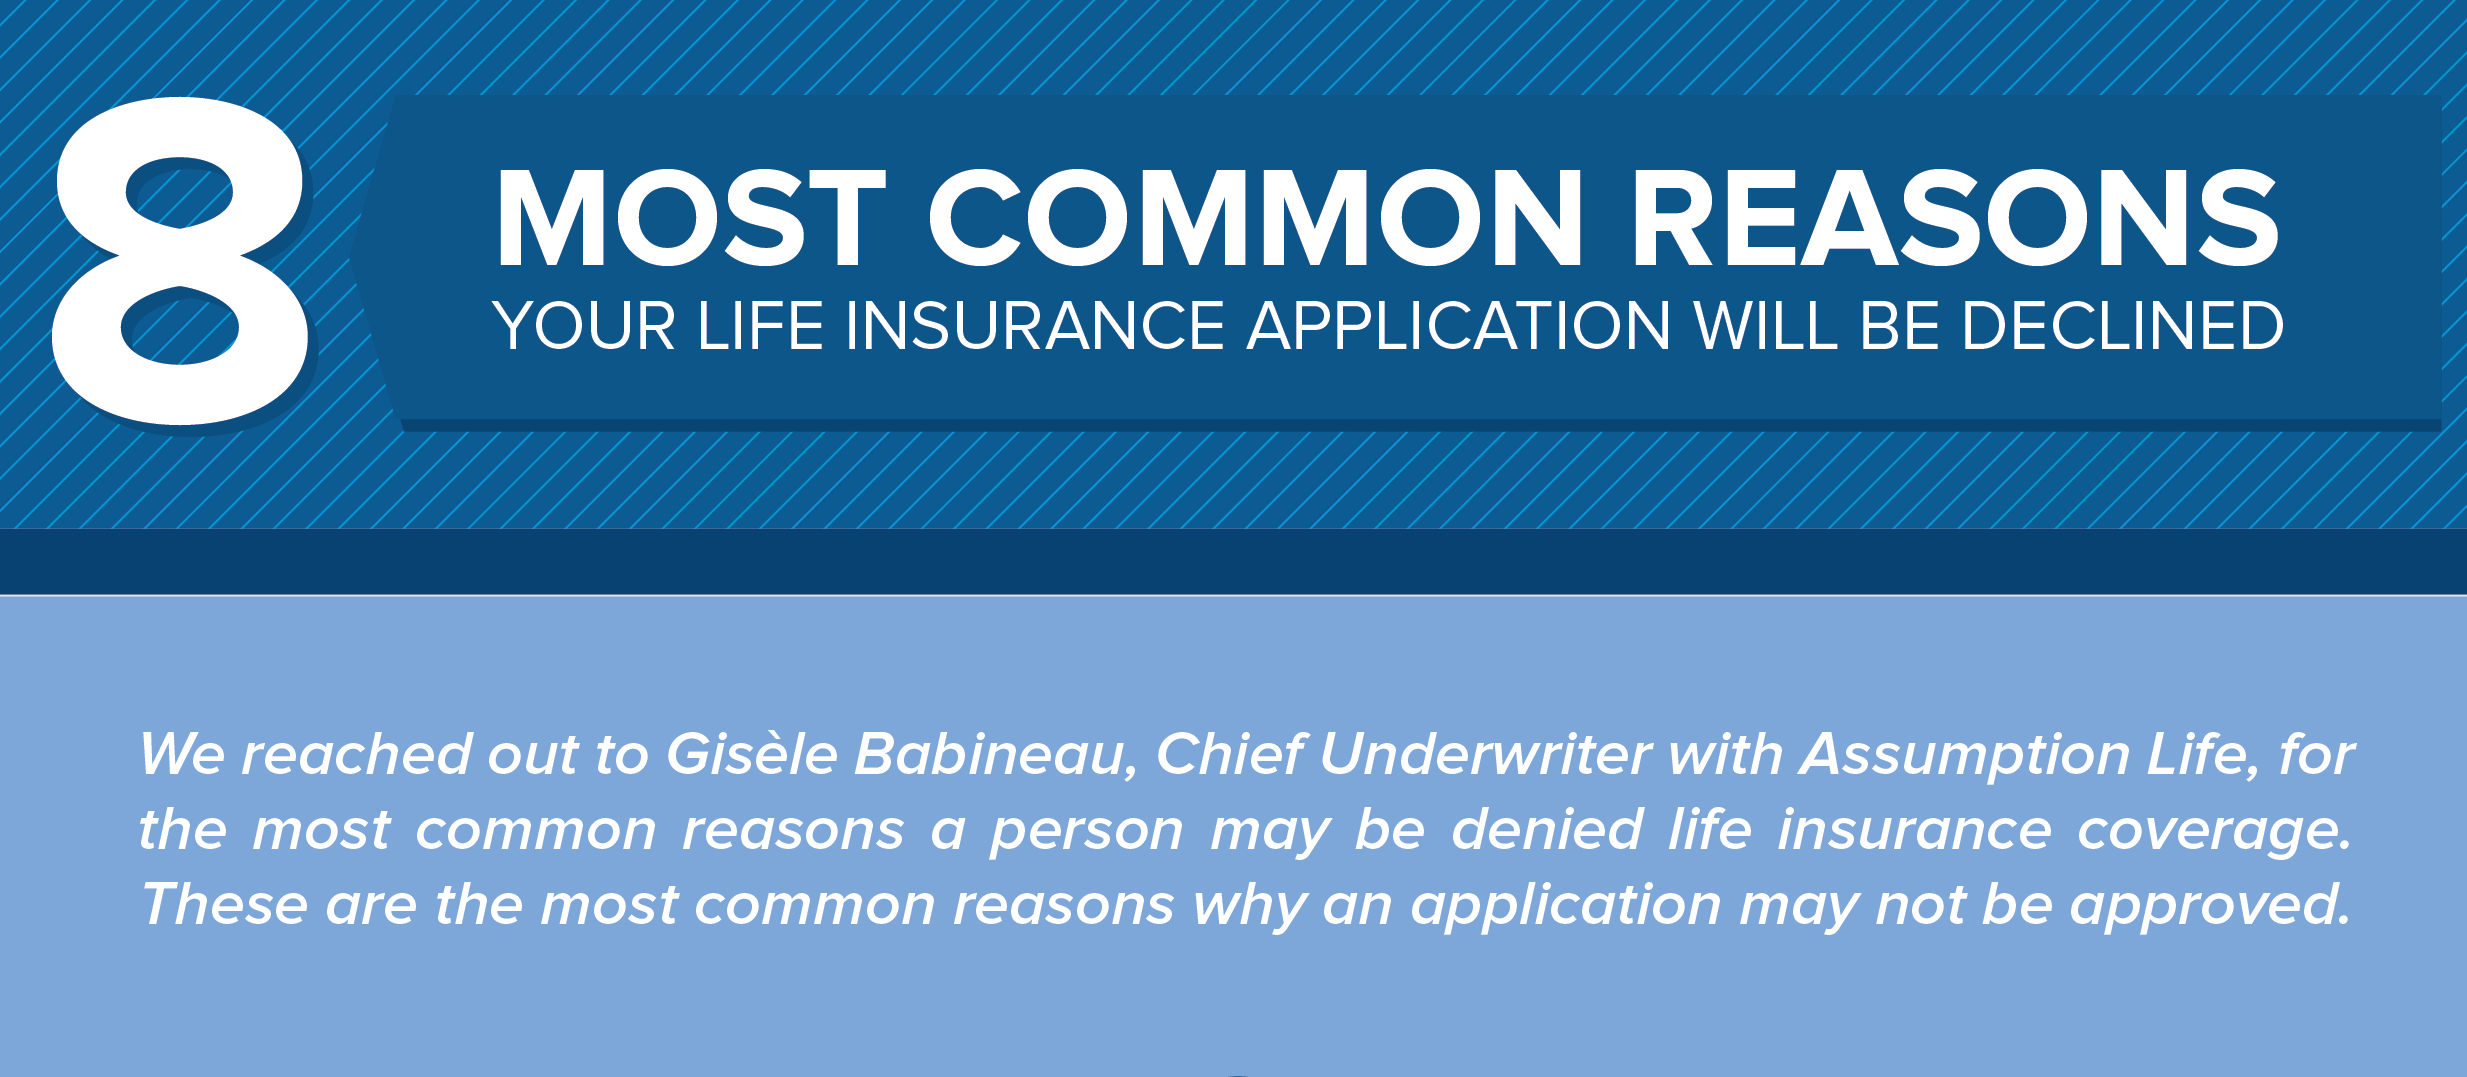 8 Most Common Reasons Why Your Life Insurance Application Will Be Declined